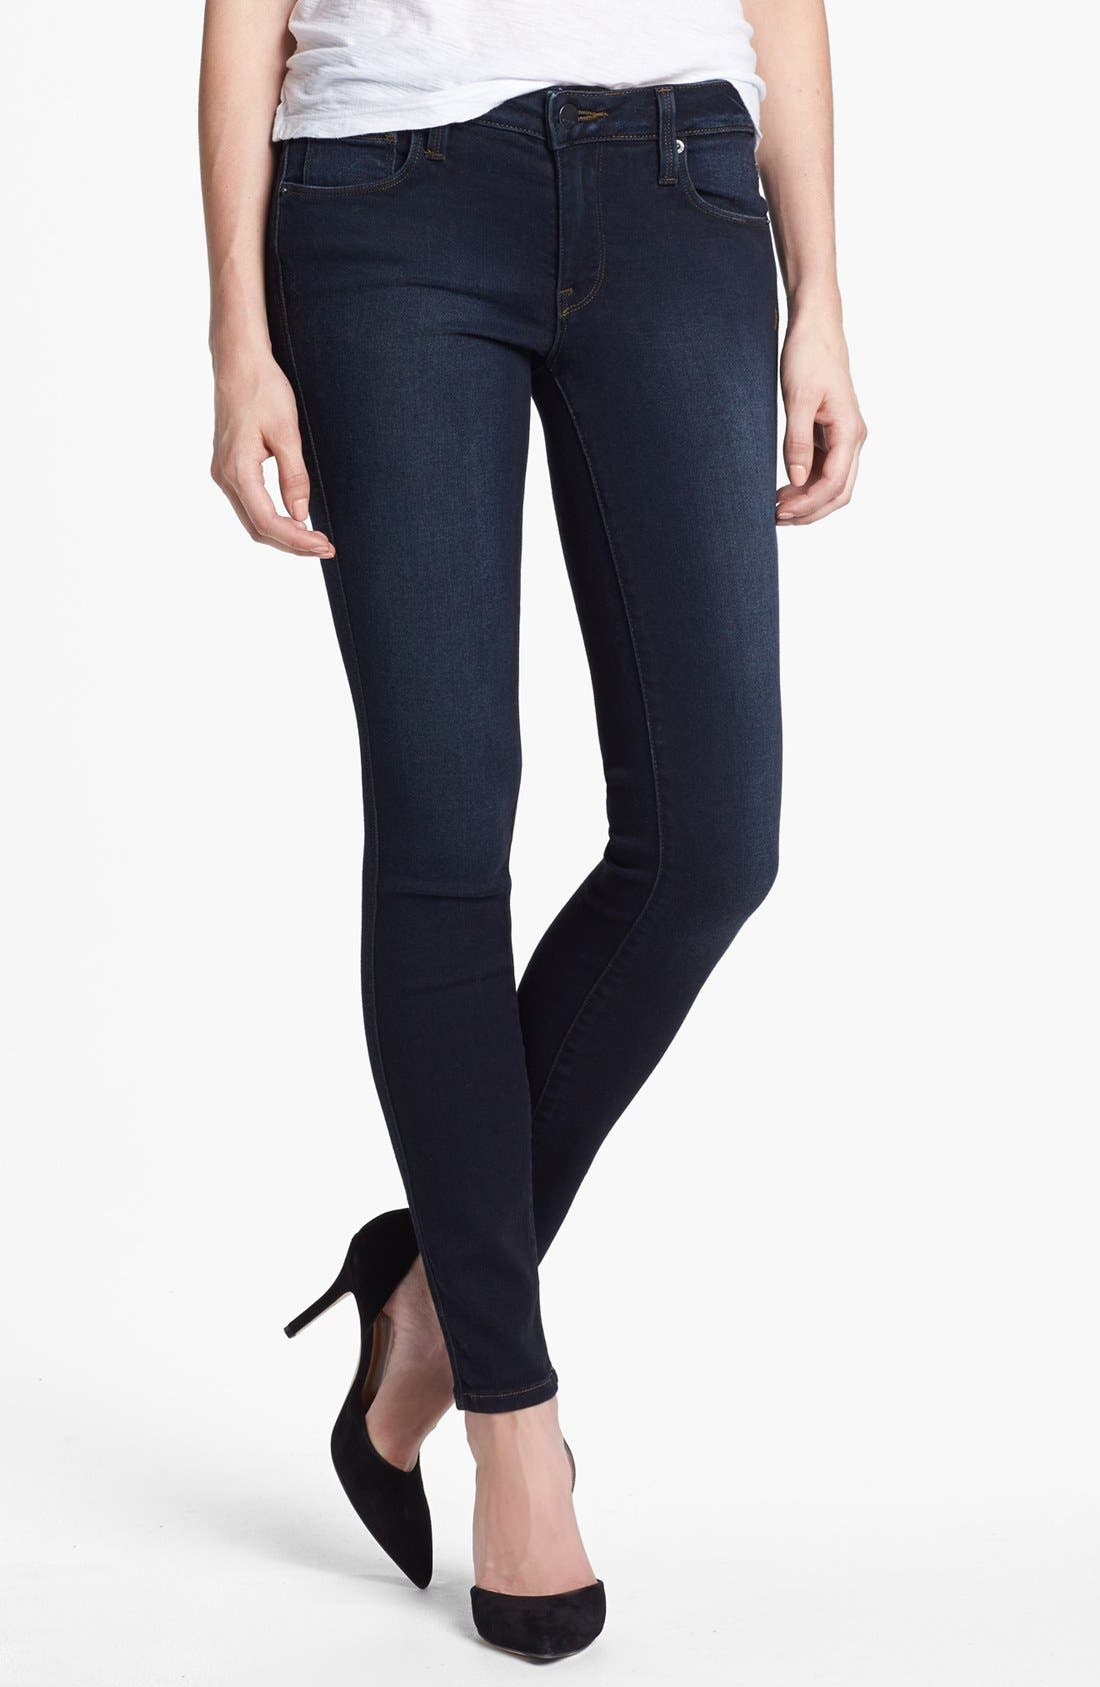 Alternate Image 1 Selected - Genetic 'The Shya' Cigarette Skinny Jeans (Nomad)